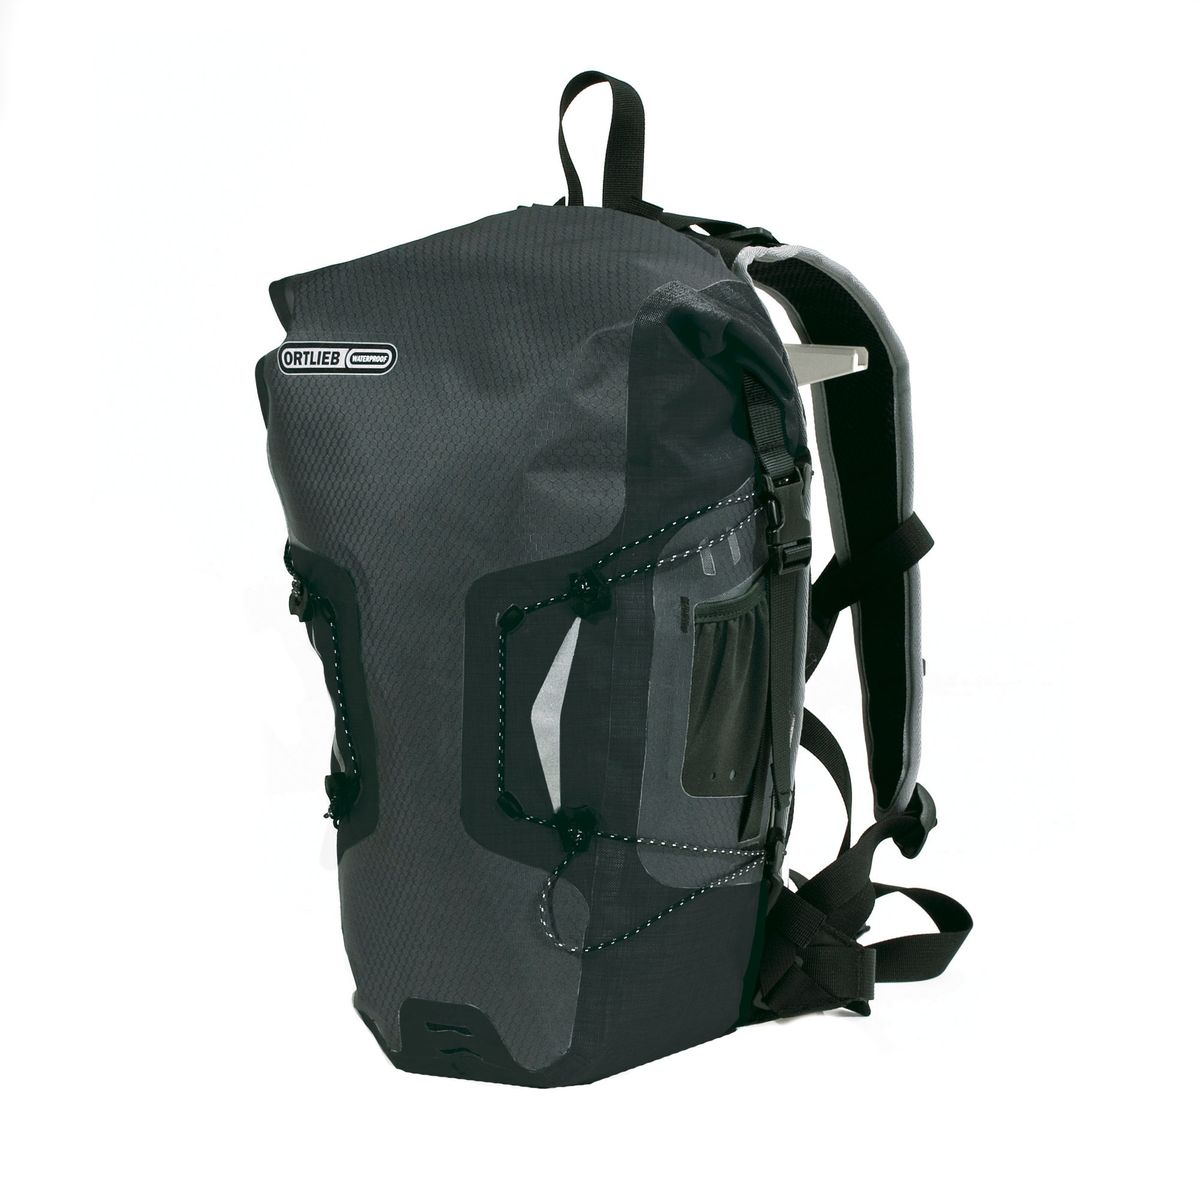 AIRFLEX 11 backpack